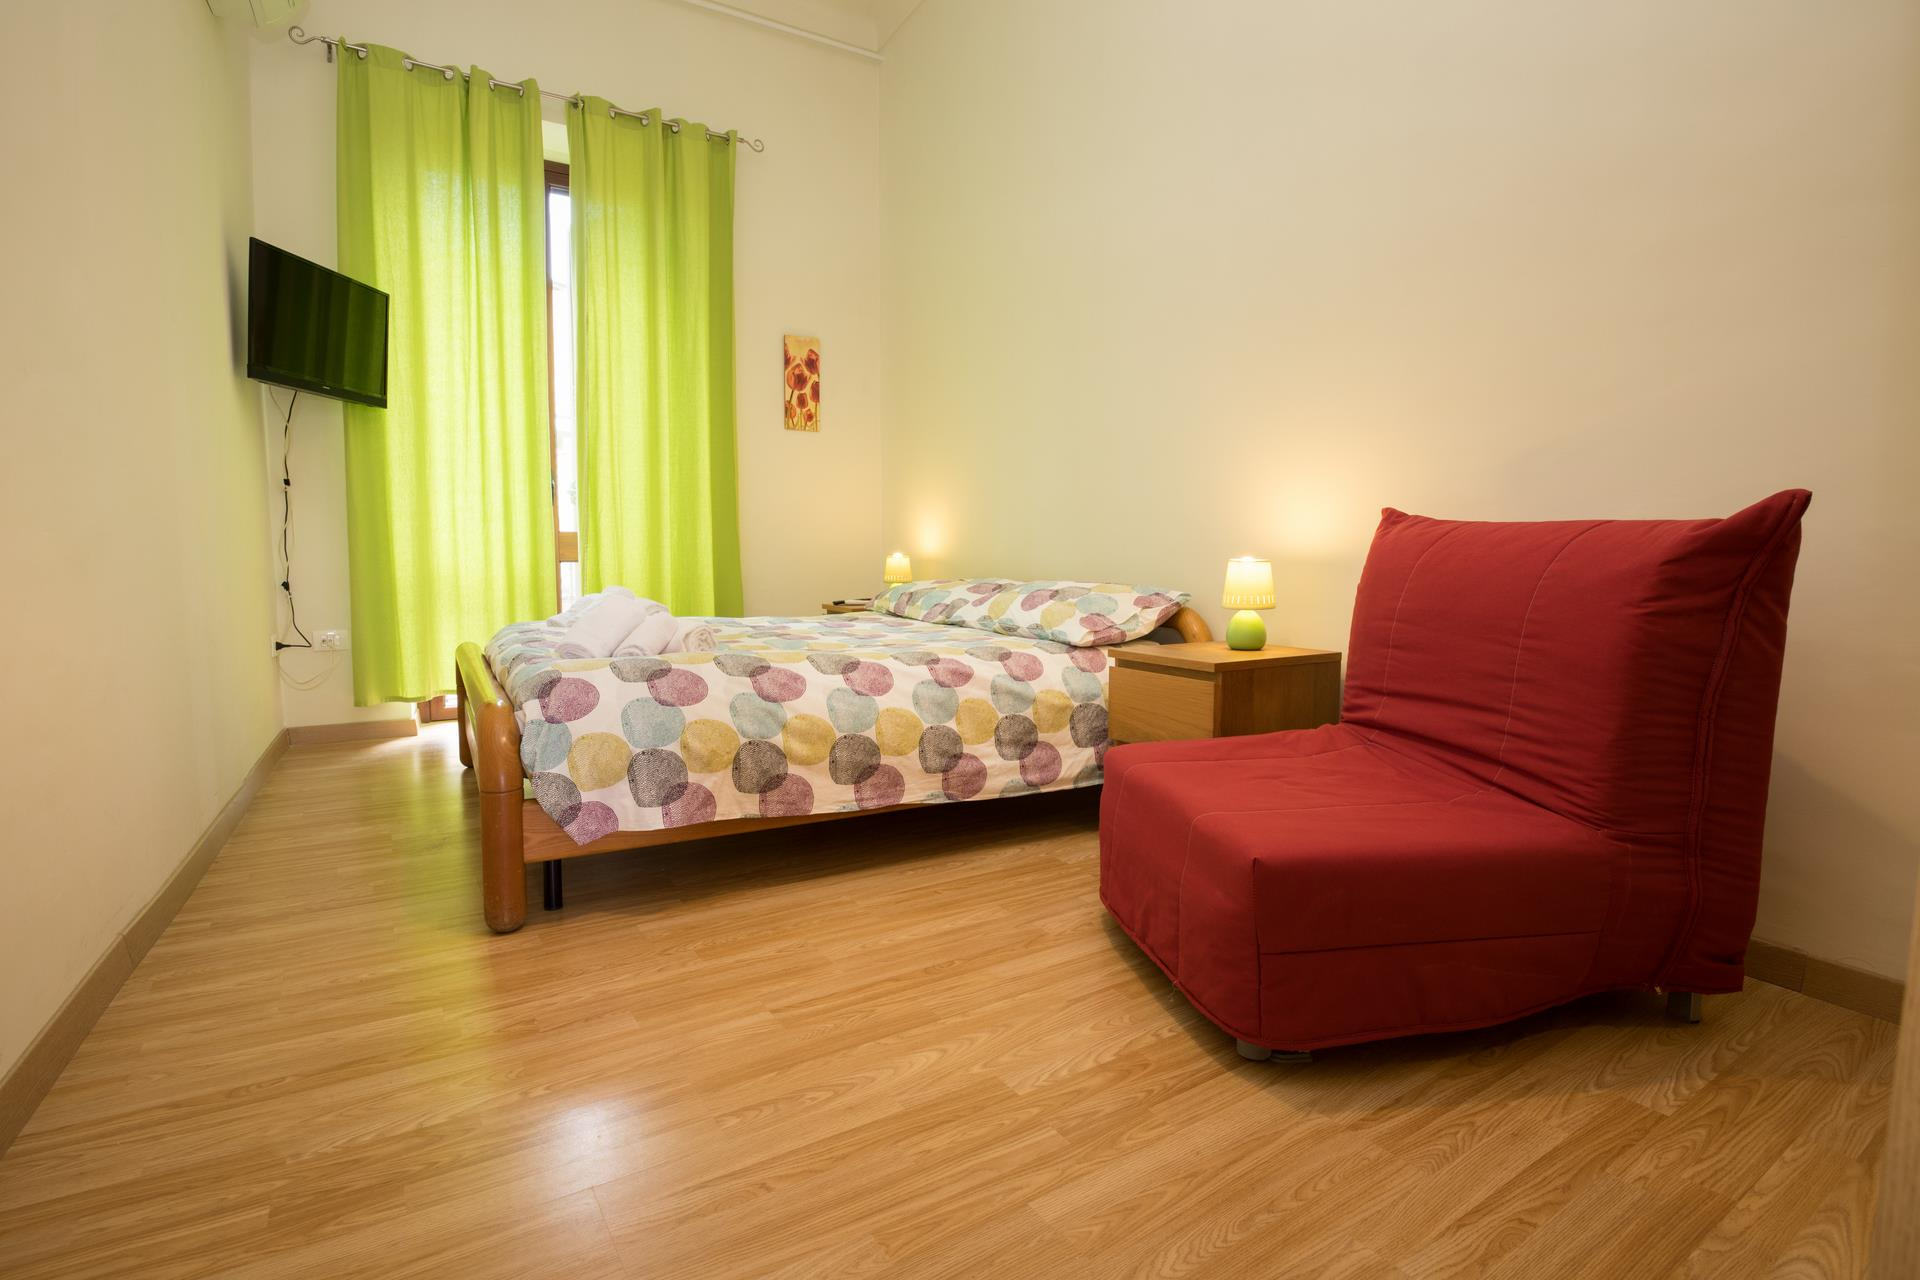 Apartment Apt E - Wellness House Galilei 9 sleeps photo 18685038